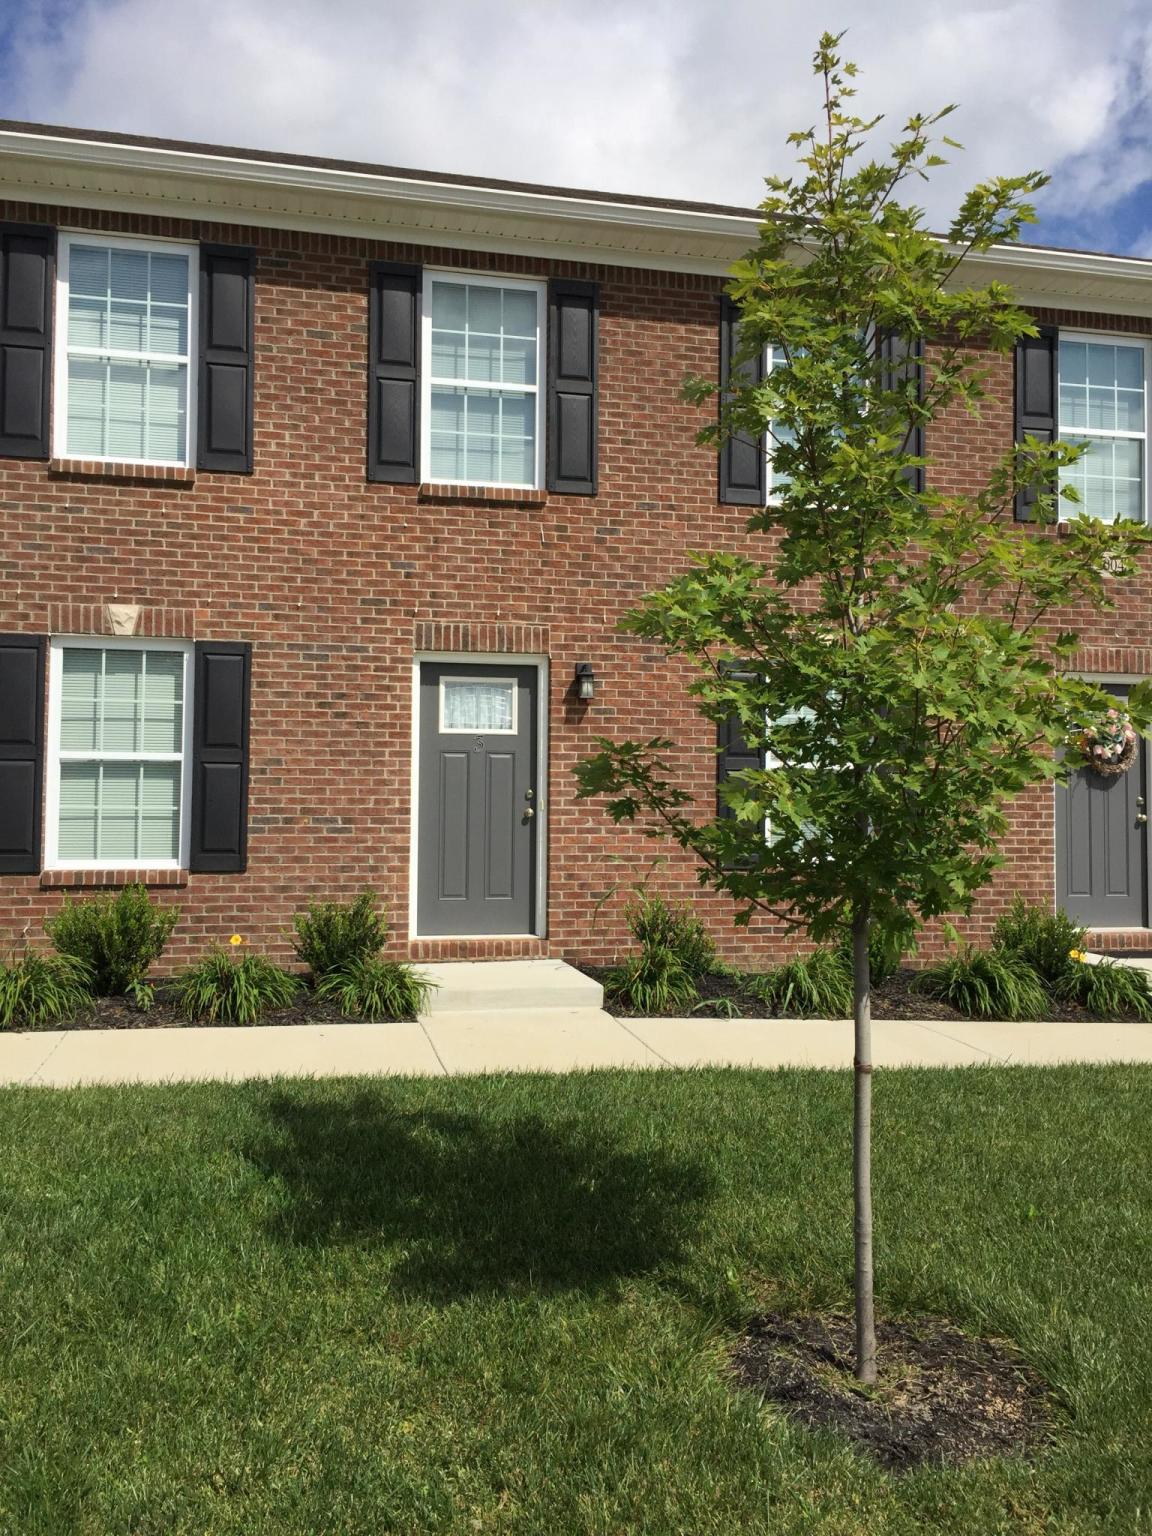 2000 Willow Dr #1, Richmond, KY 40475 For Rent | Trulia